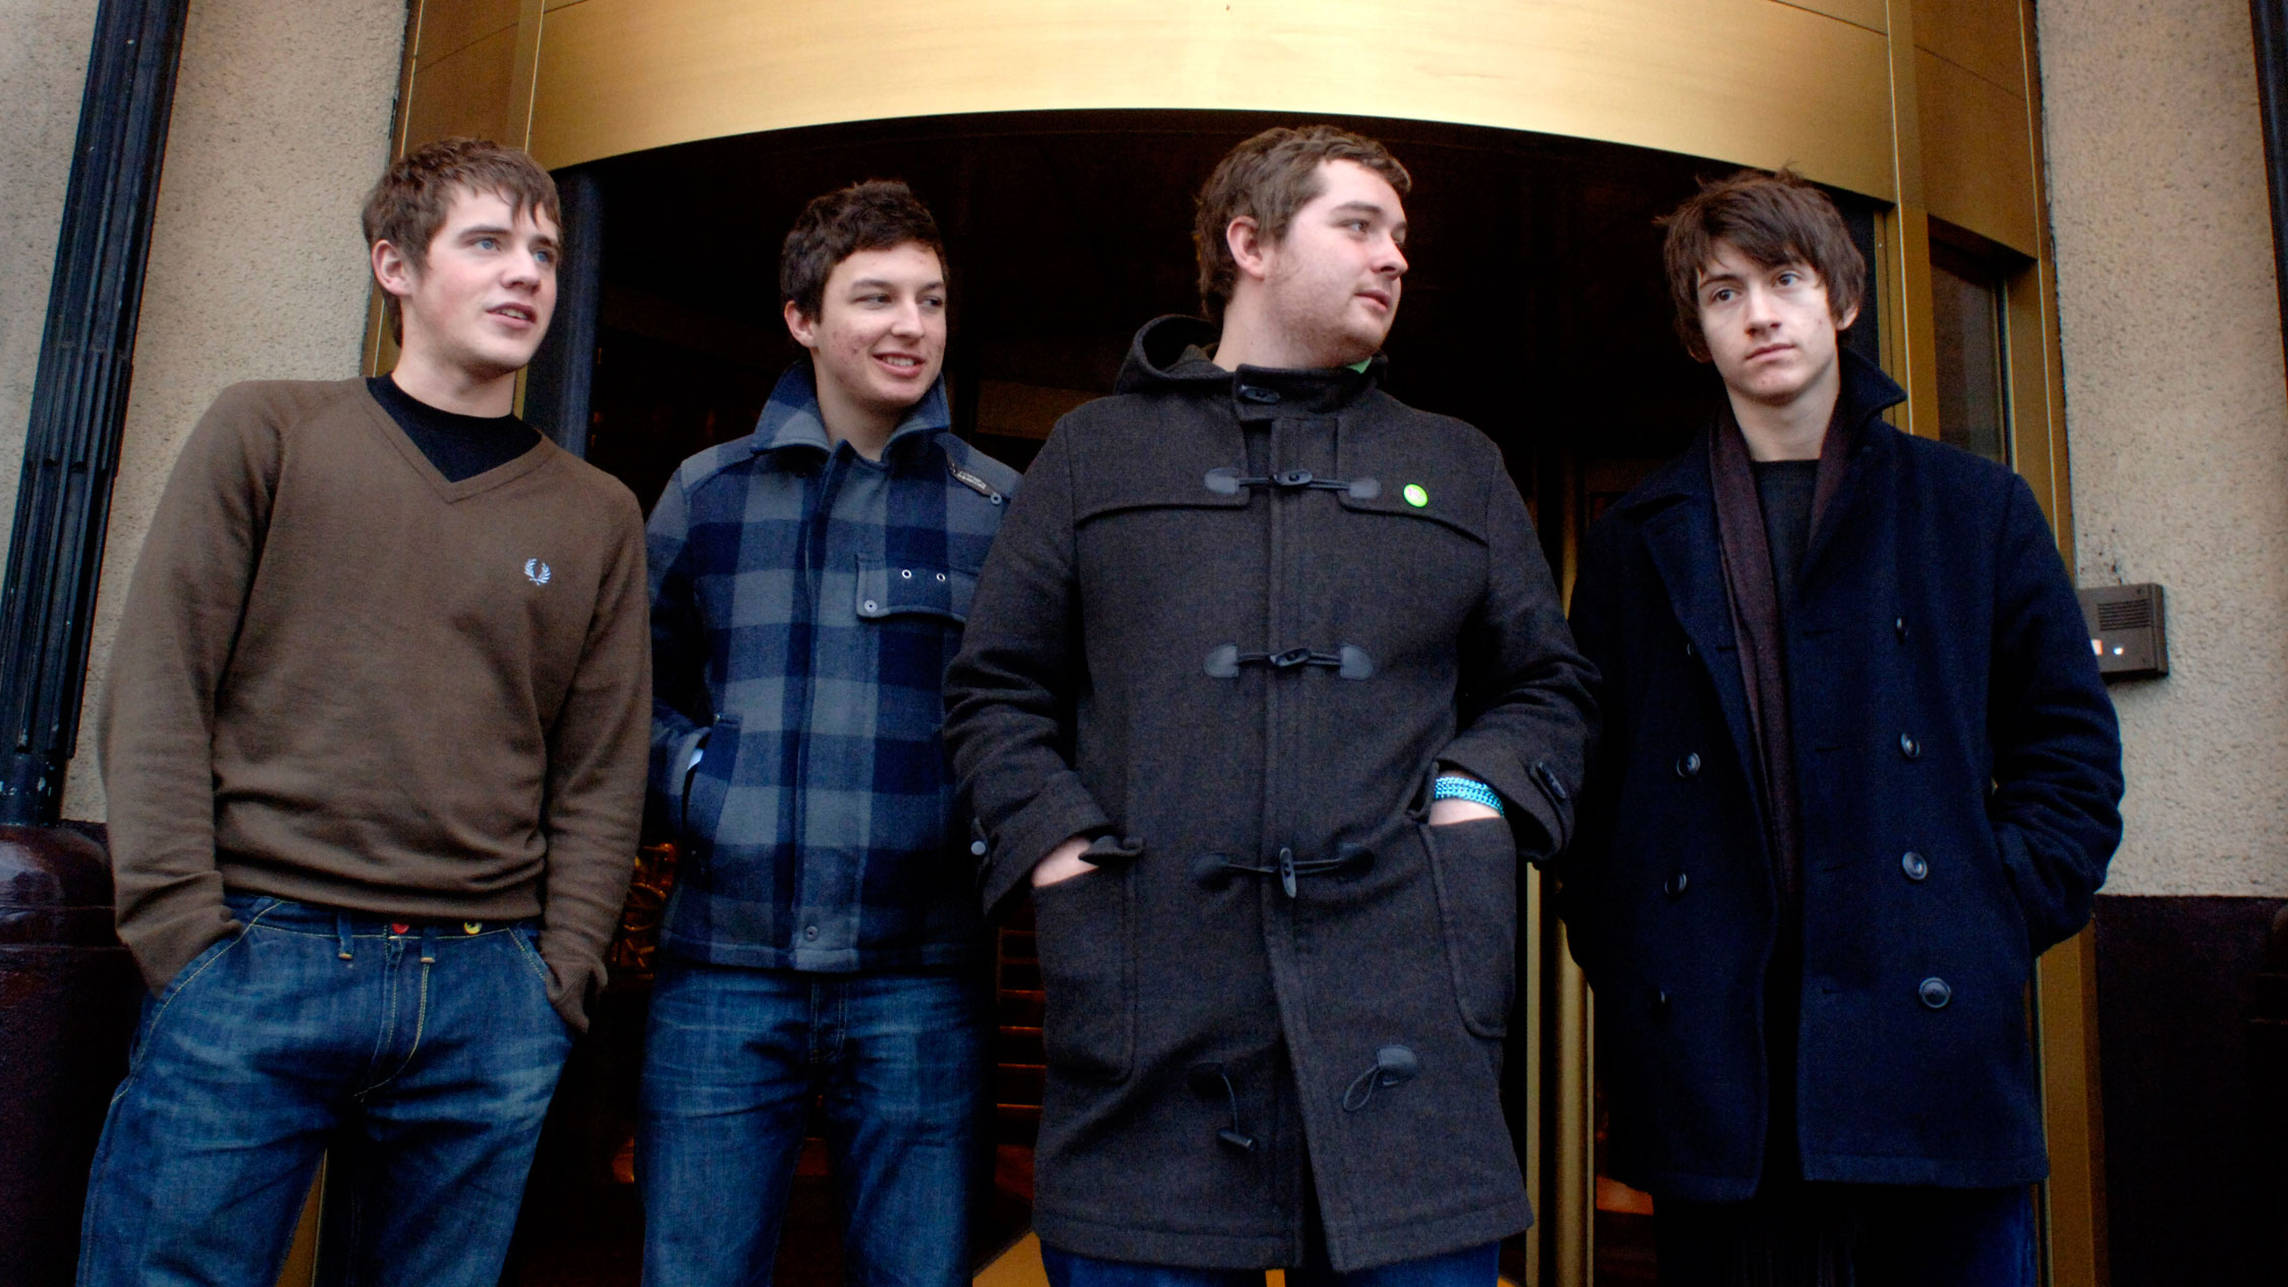 Original Arctic Monkeys bassist Andy Nicholson reveals if he's still in contact with the band